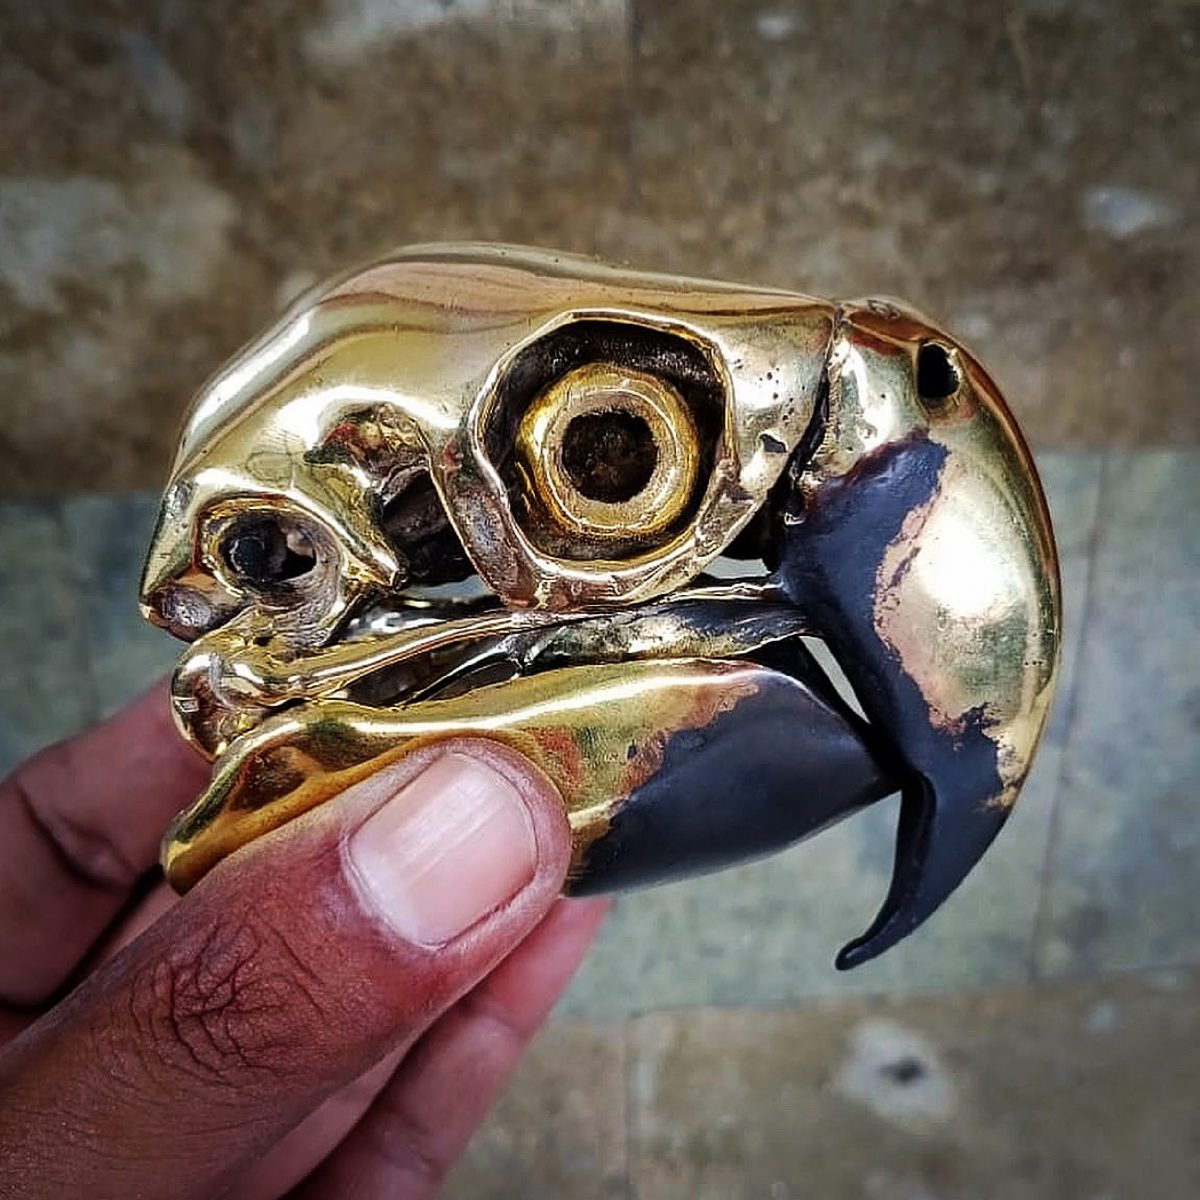 Brass and Recycled Copper parrot skull sculpture by Alexandre Leblanc